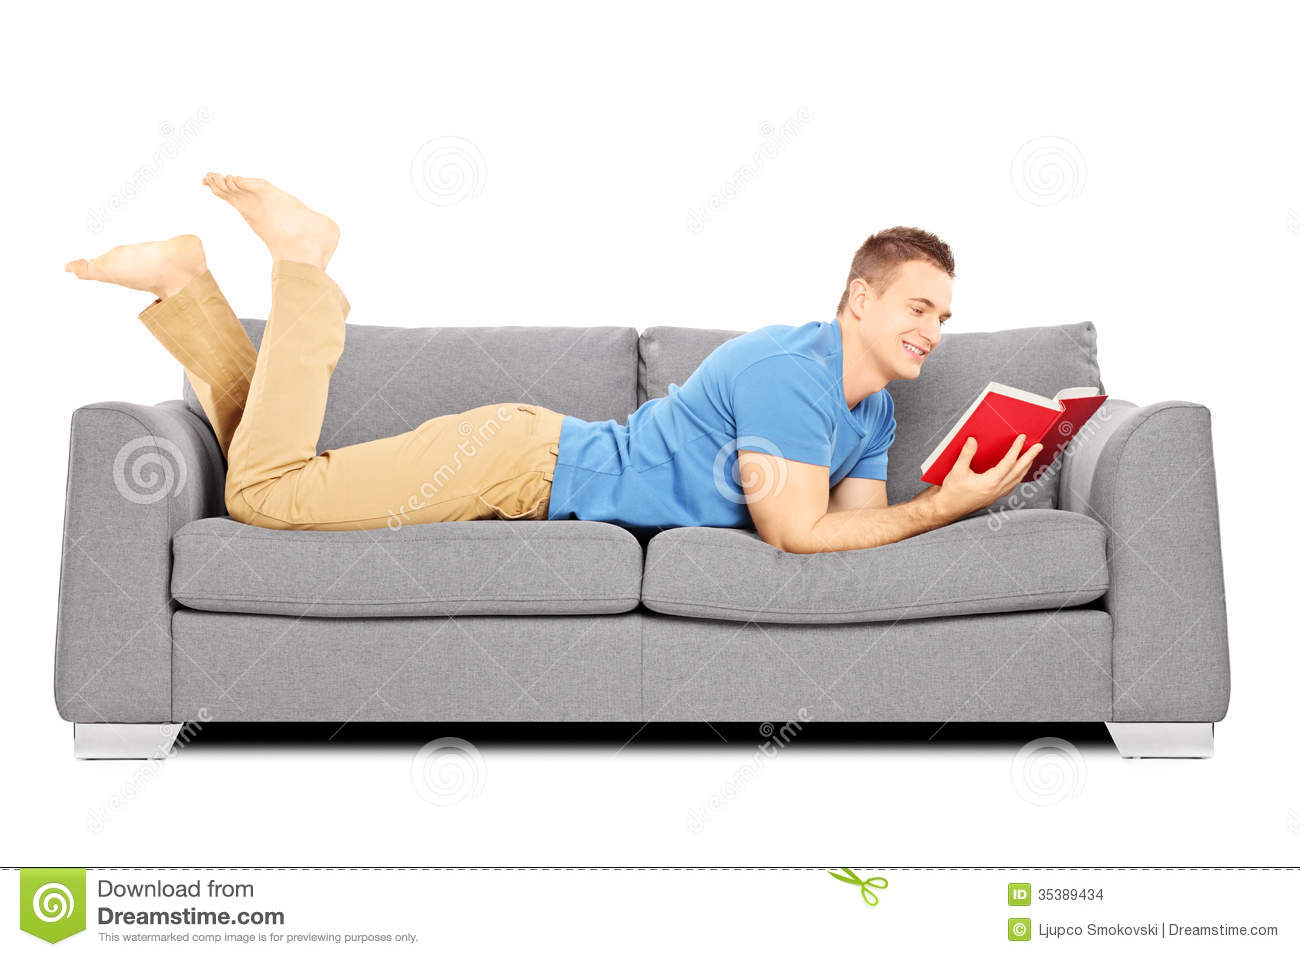 Reading Sofas : Reading Sofas : Handsome Muscular Young Man Isolated On White ...